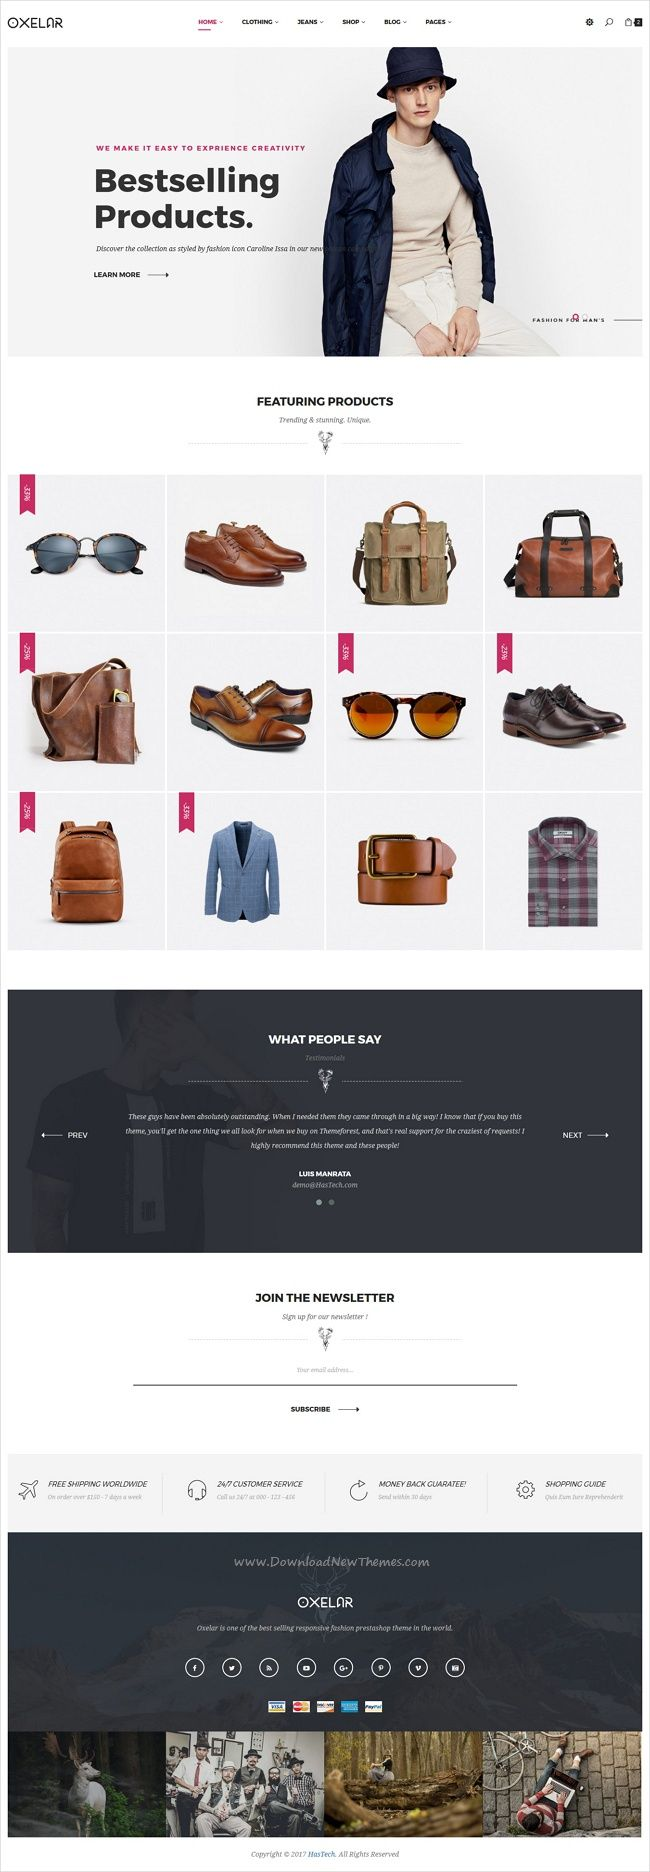 Oxealar is a wonderful 6in1 responsive #HTML bootstrap template for #webmaster stunning #eCommerce websites download now➩ https://themeforest.net/item/oxelar-multipurpose-ecommerce-template/19363915?ref=Datasata